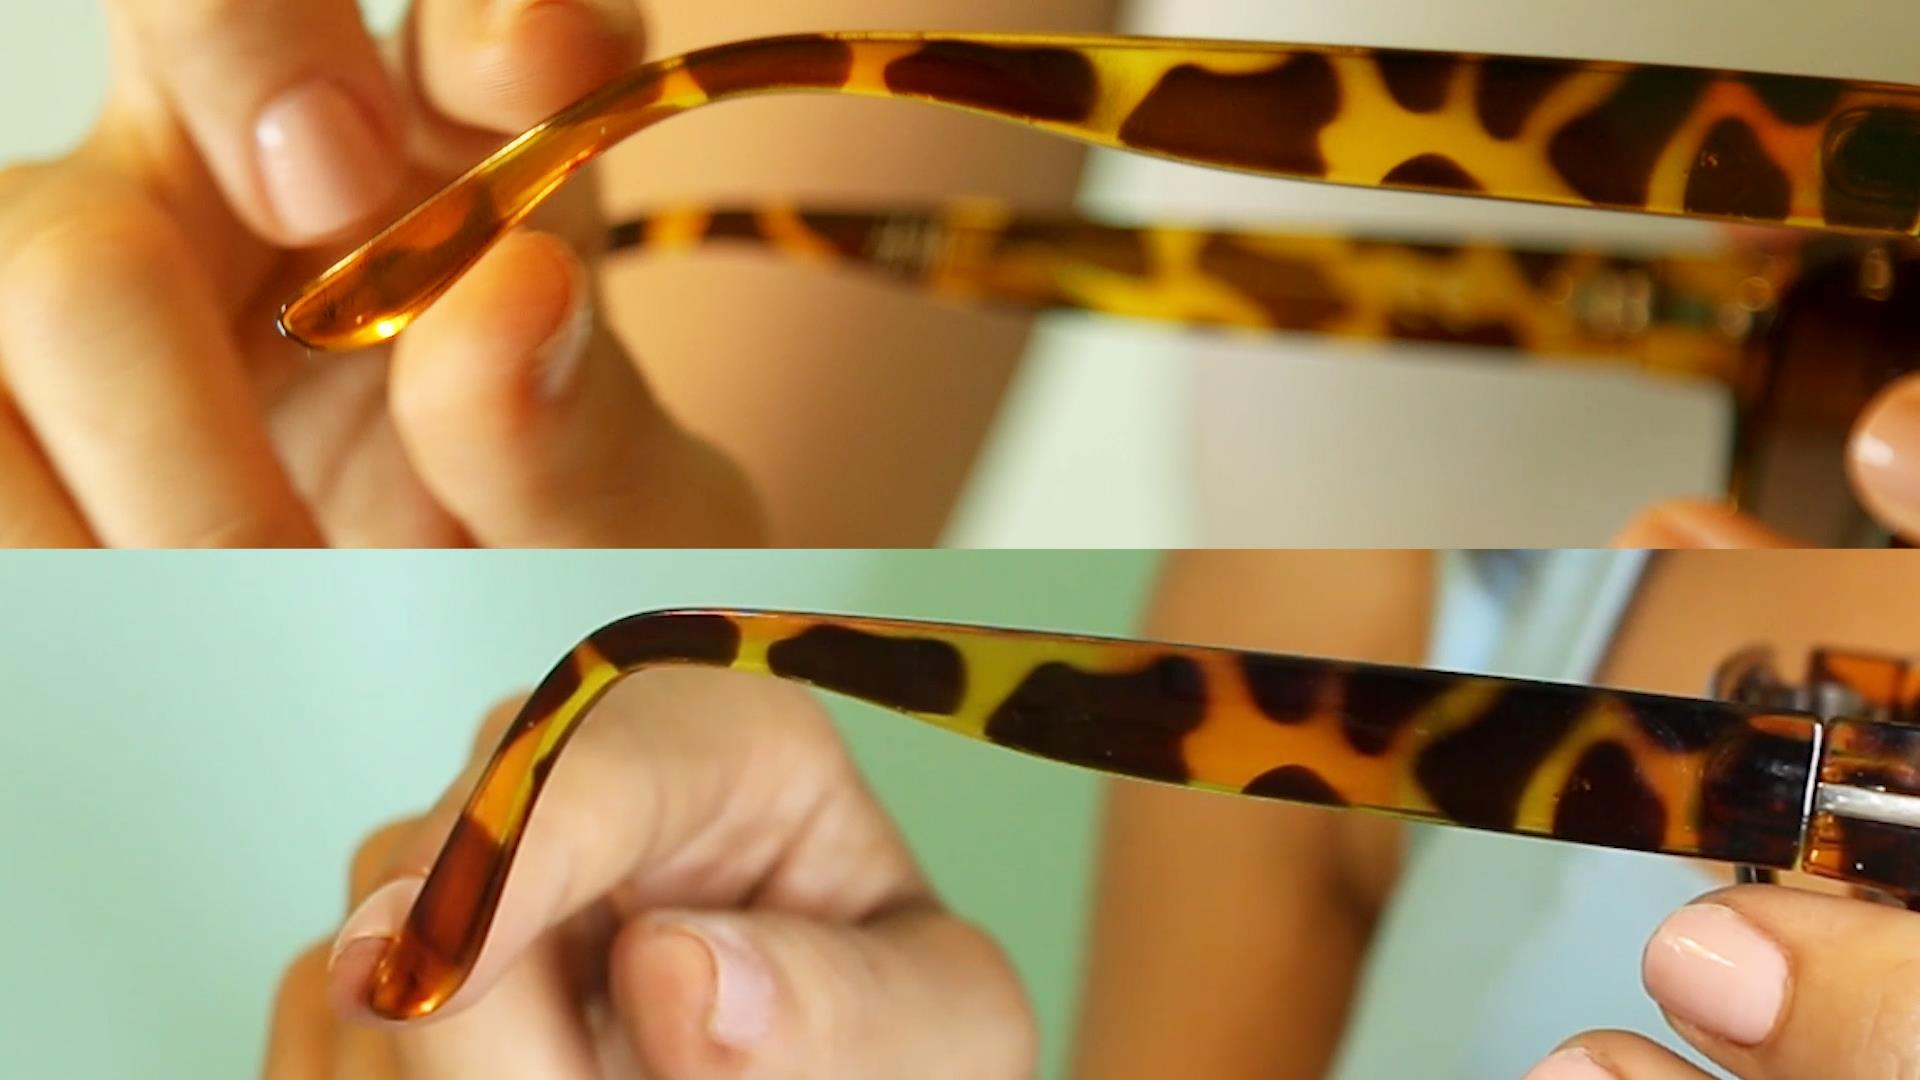 How To Fix Sunglasses That Are Slipping